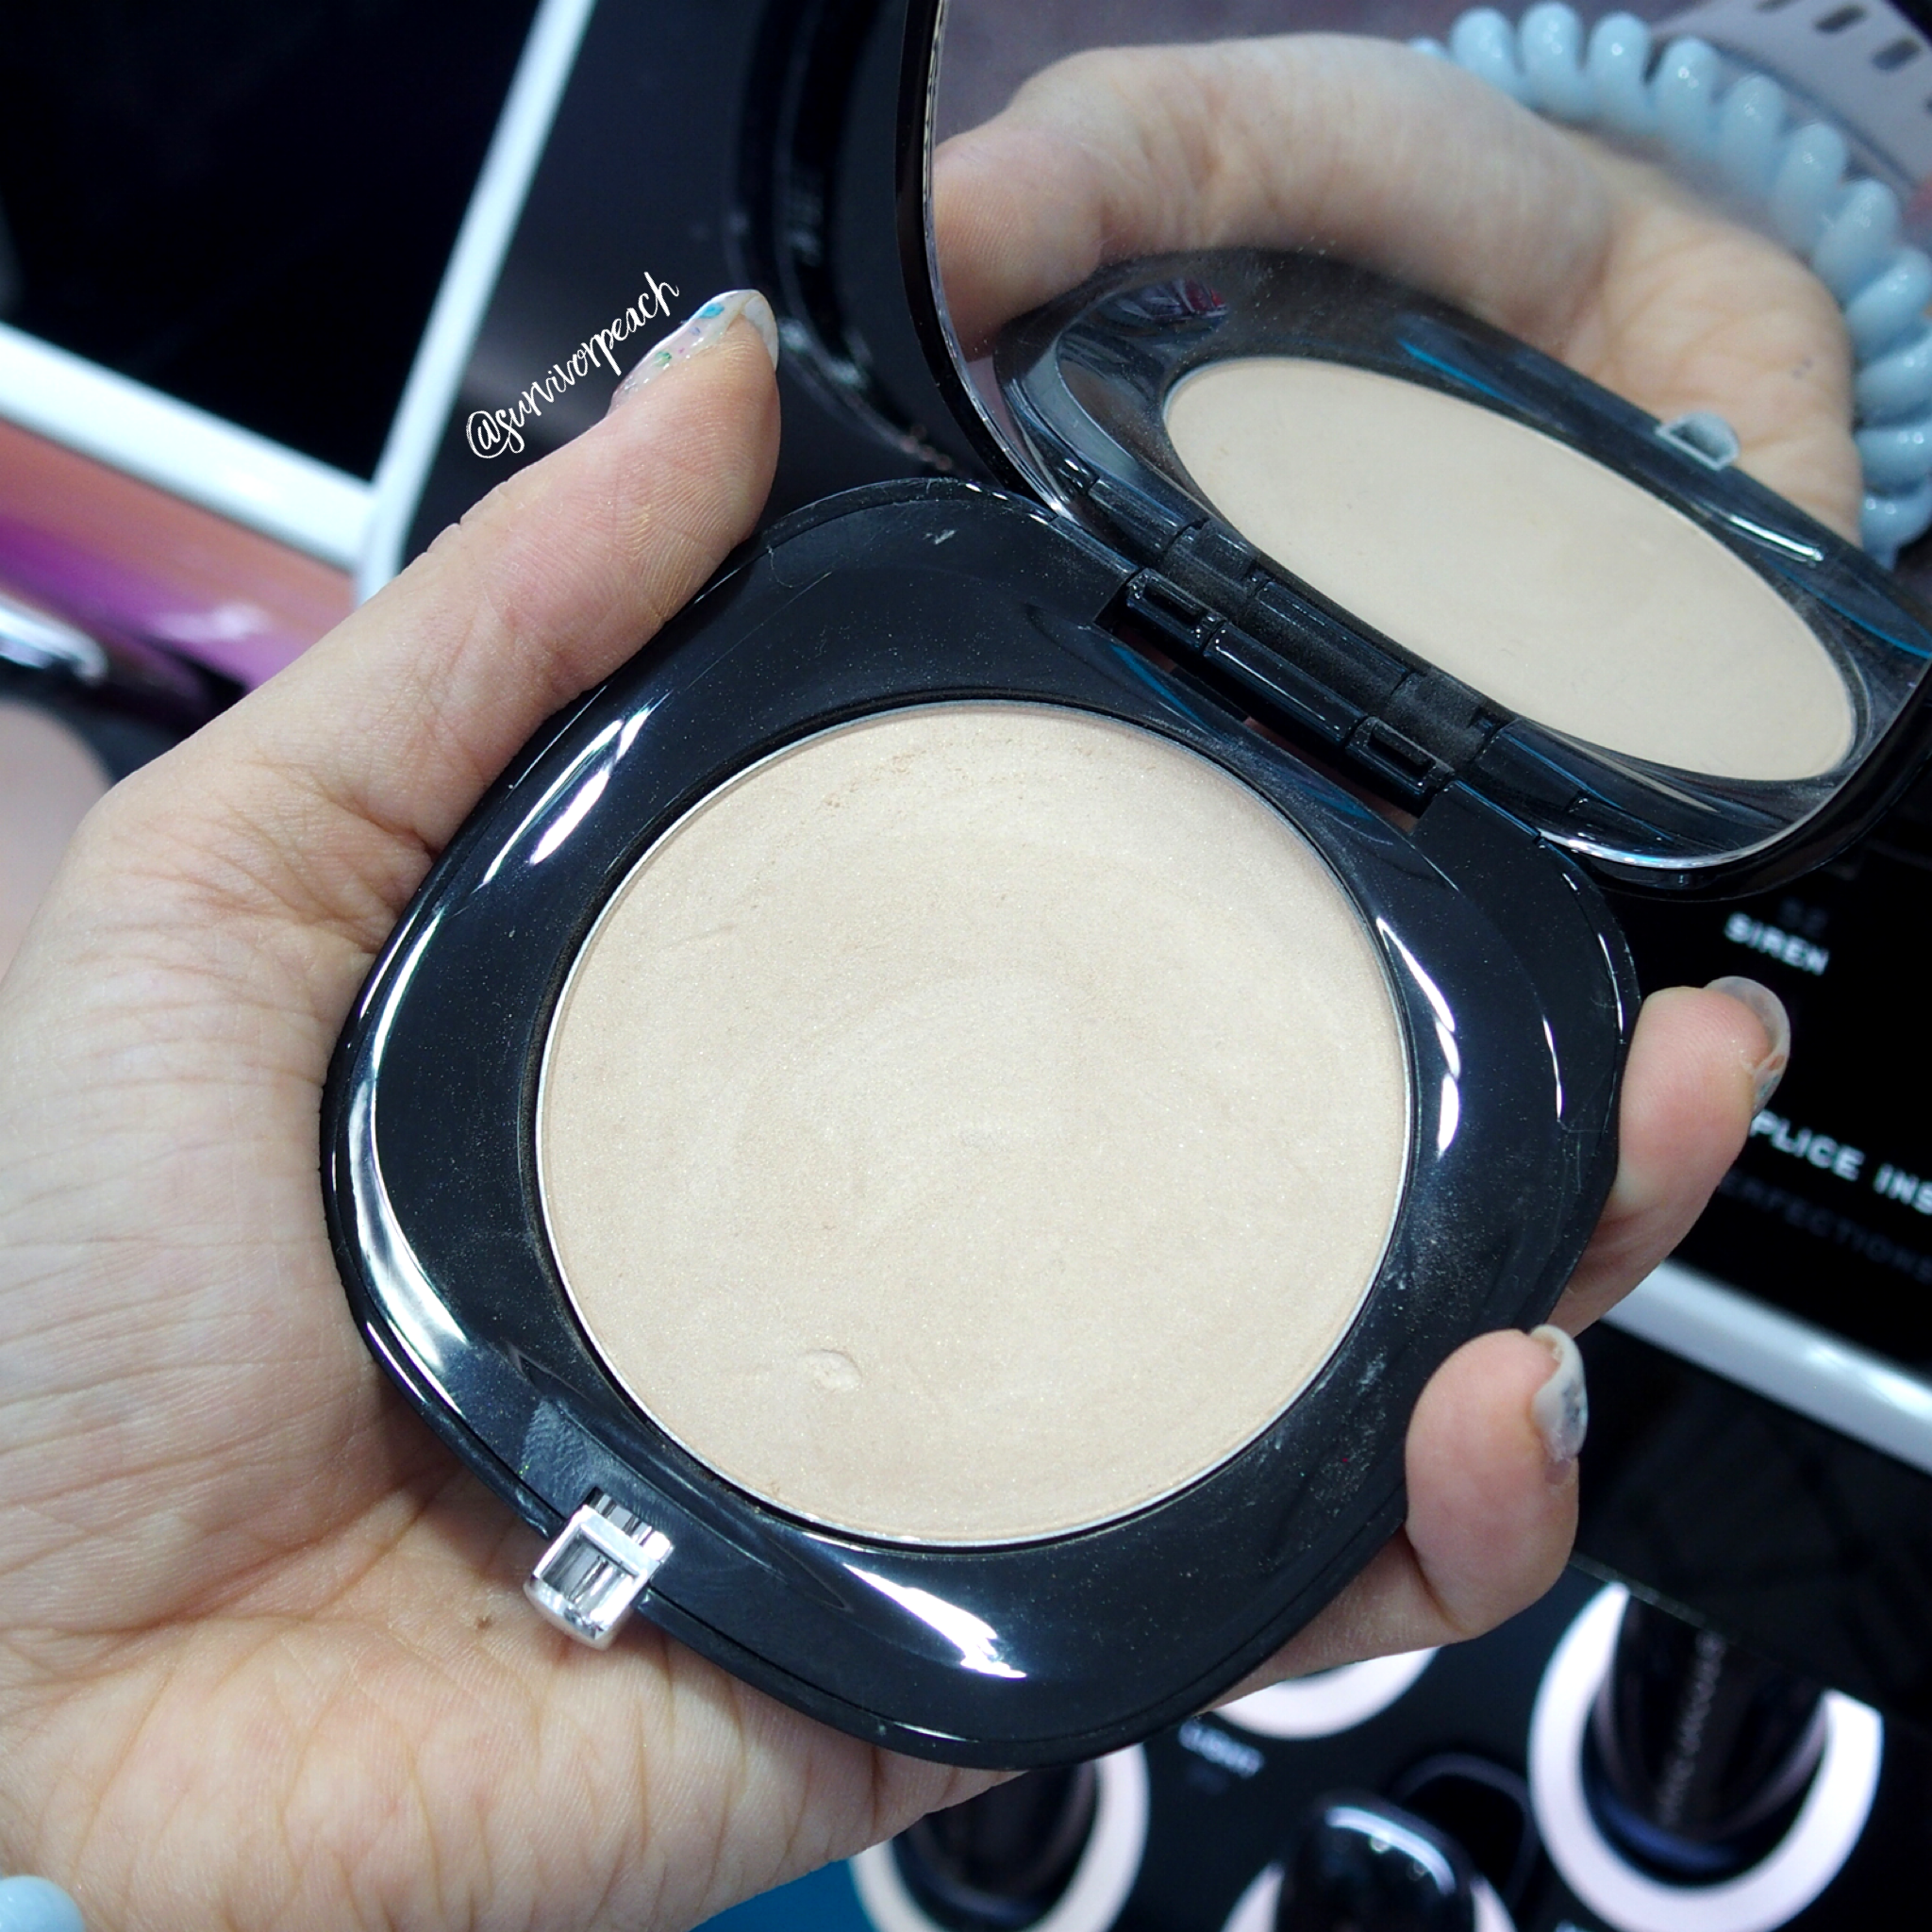 Marc Jacobs Accomplice Instant Blurring Beauty Powder - Ingenue